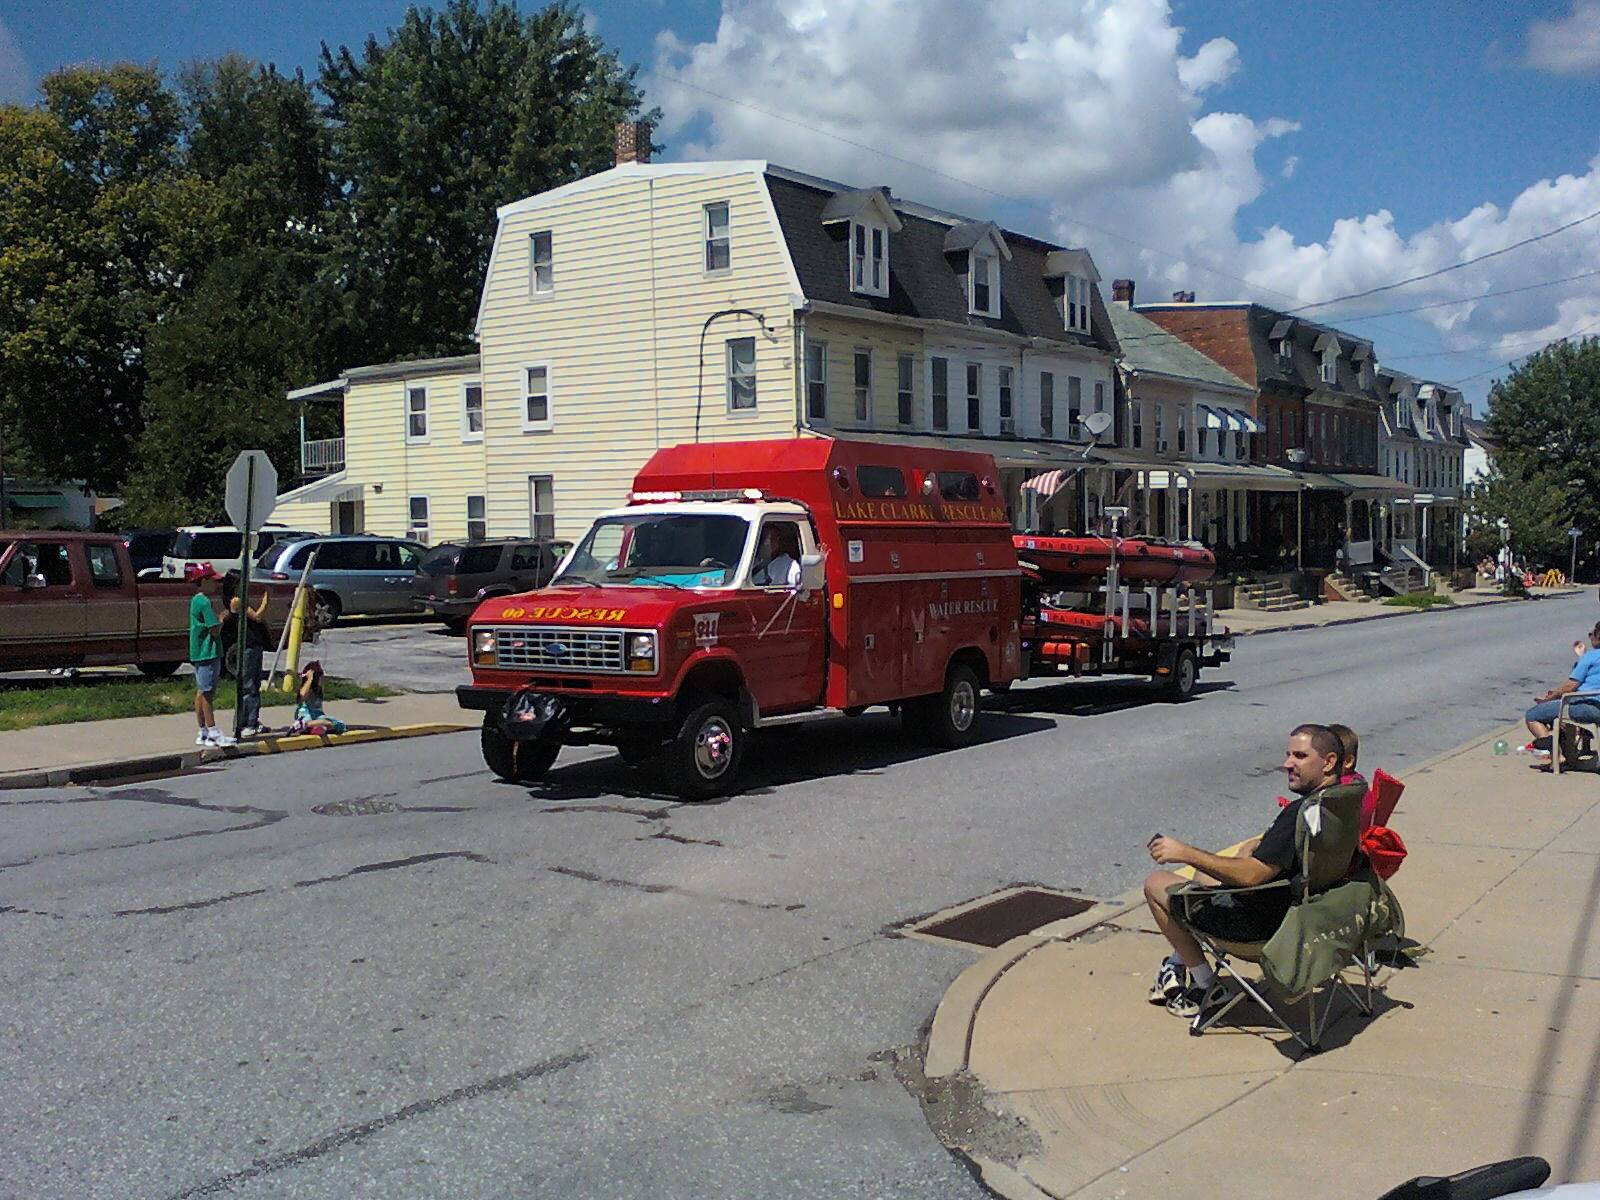 2012 York County Firemans Convention Parade